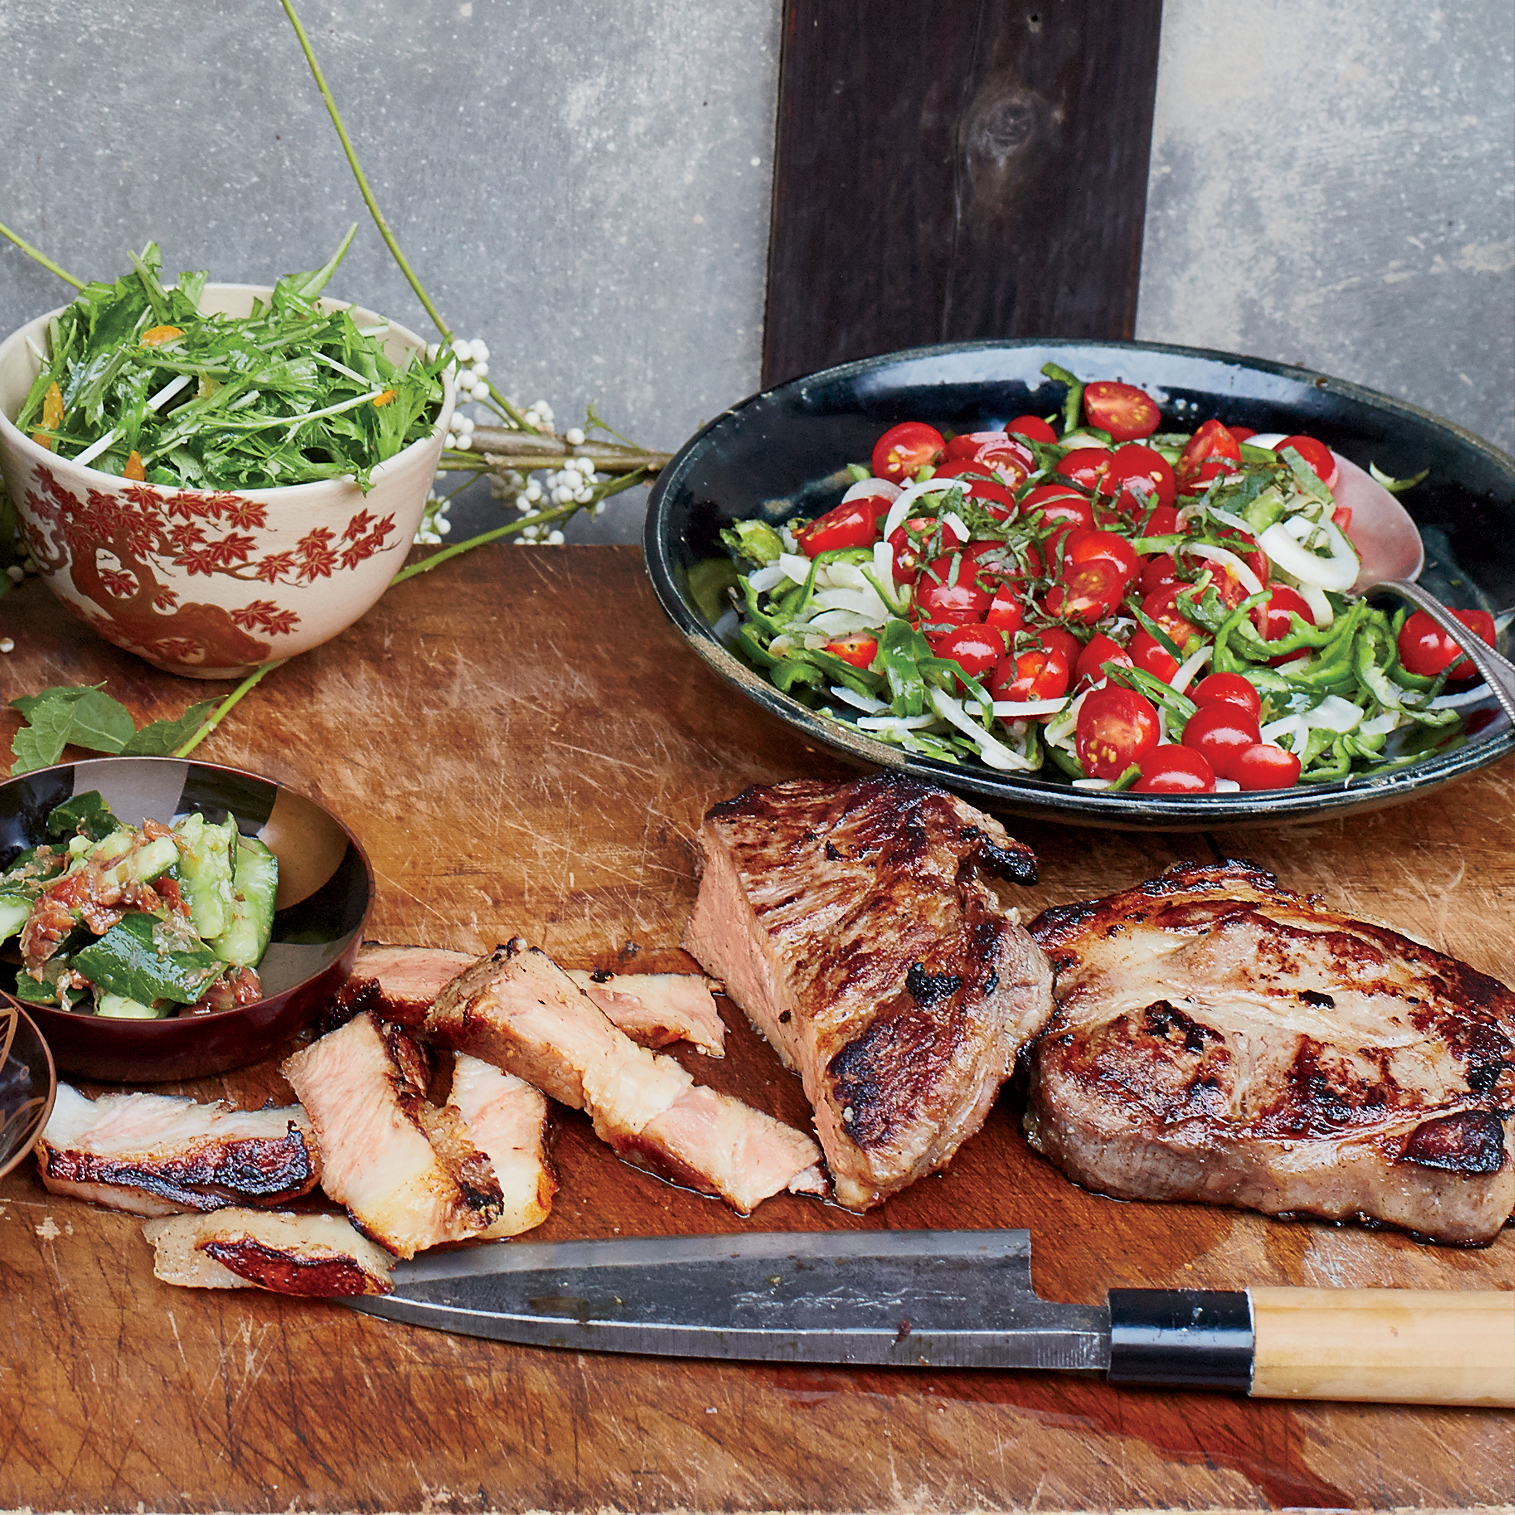 201409-r-shio-koji-marinated-pork-shoulder-steaks.jpg